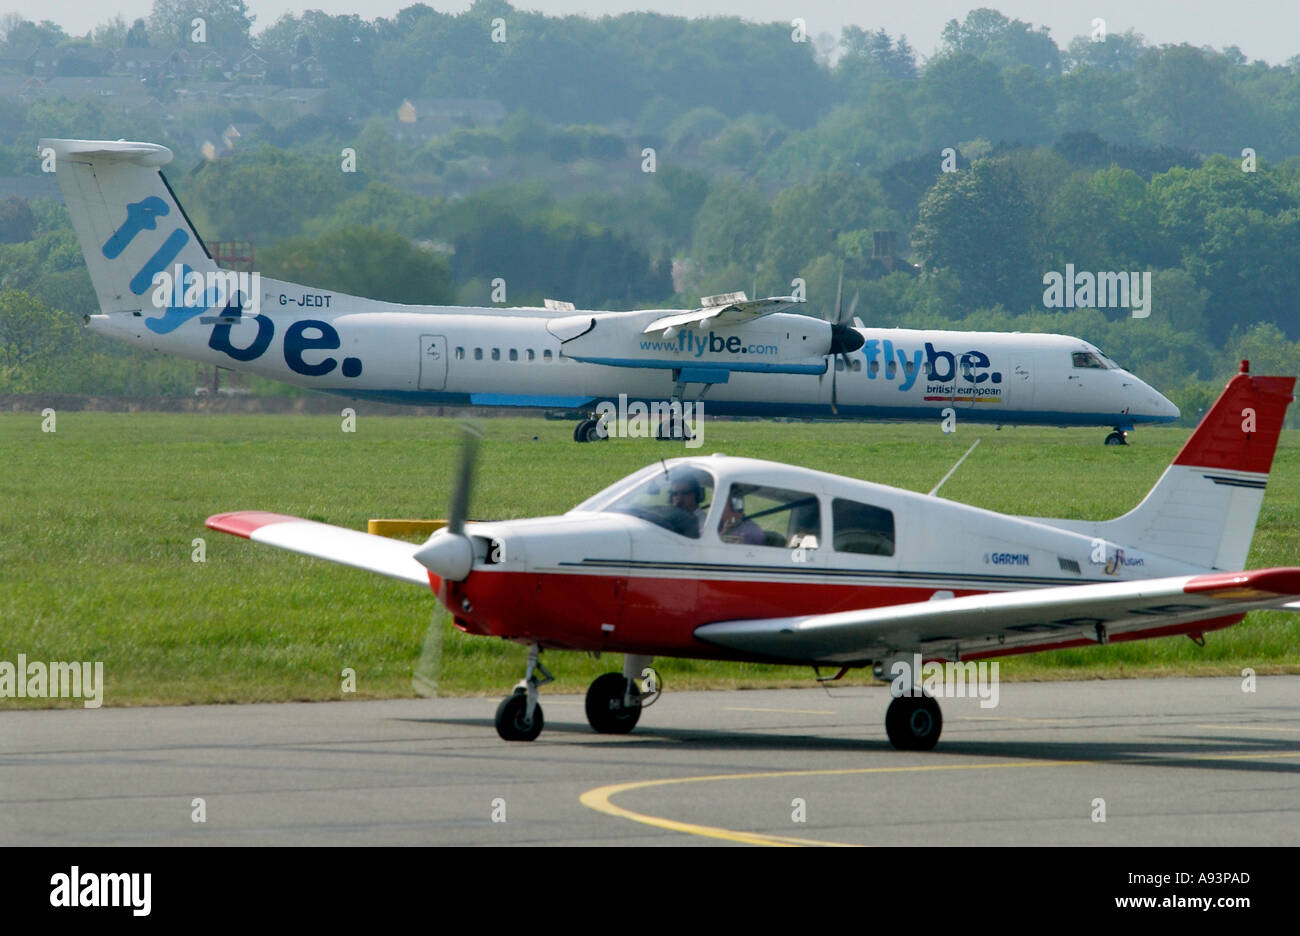 Flybe plane landing at Southampton Airport and Piper Cherokee light aircraft waiting on runway. - Stock Image